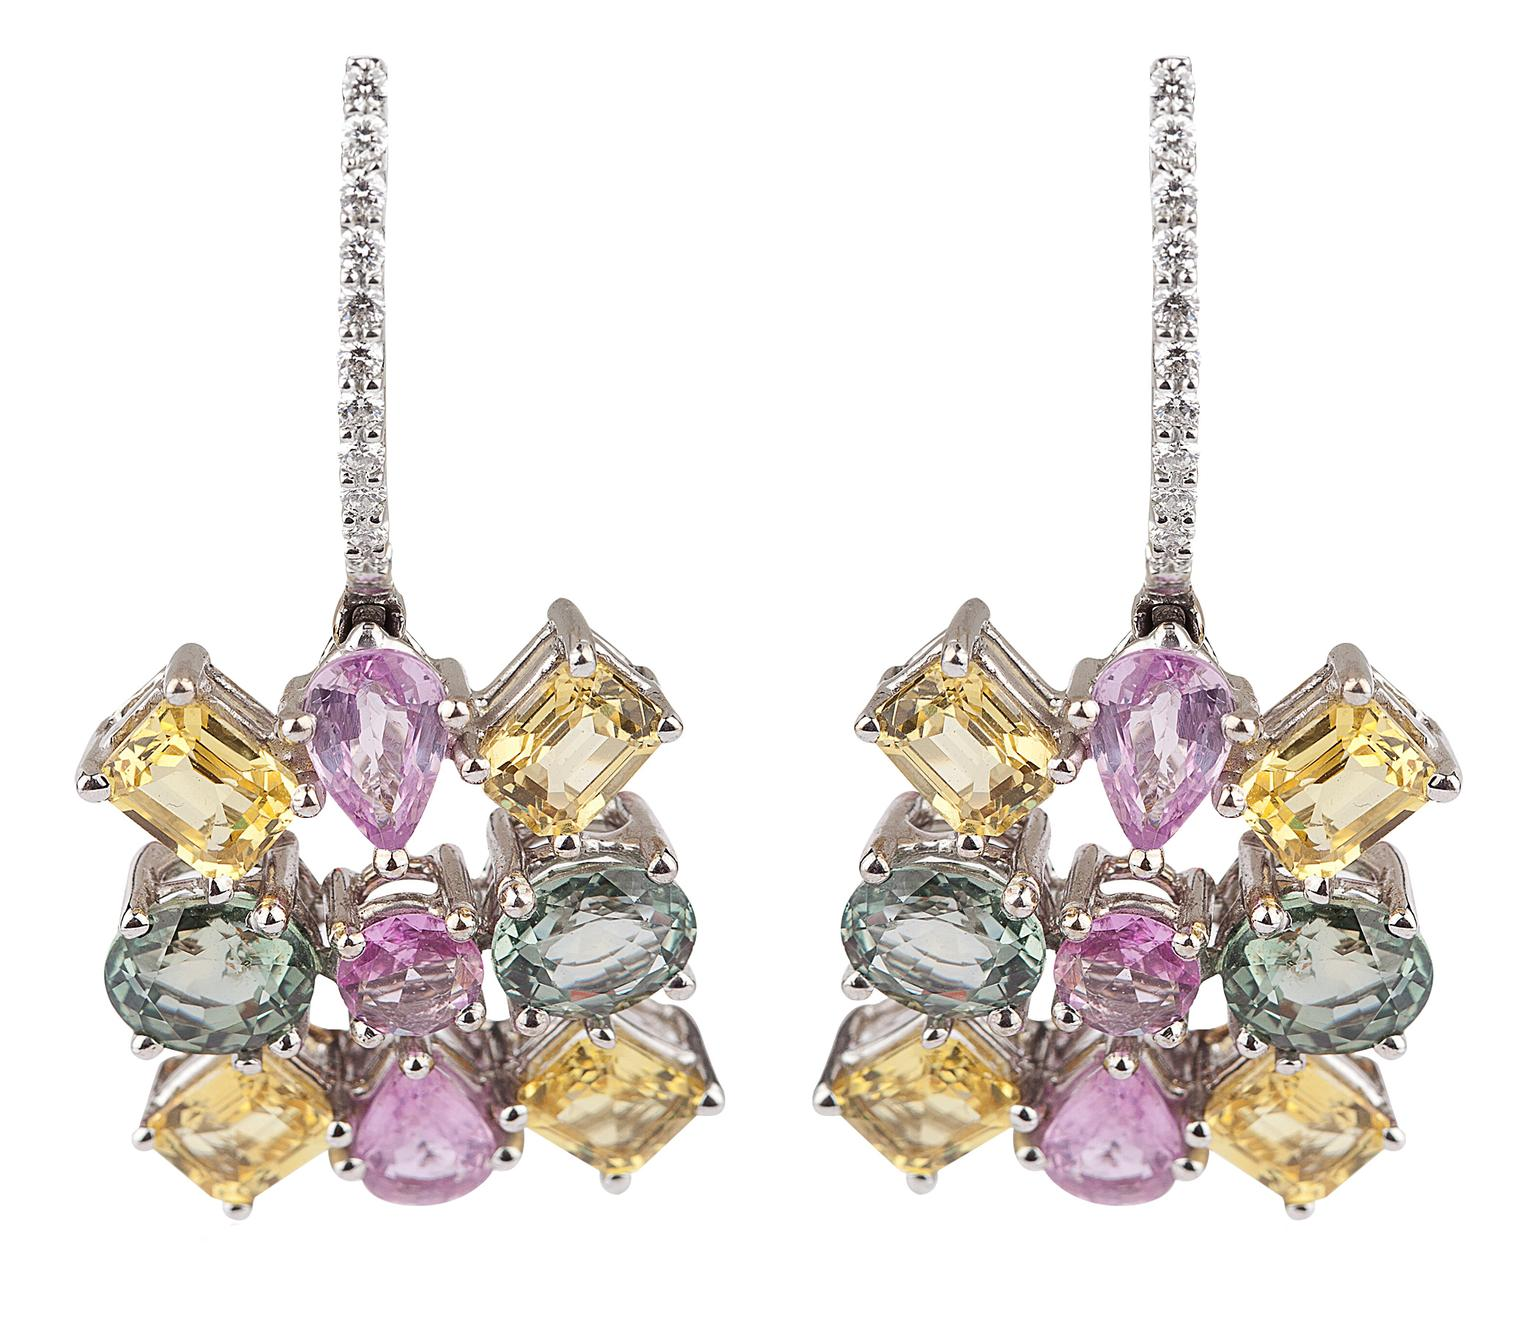 Mirari-white-gold-earrings-with-multi-coloured-sapphires_20140512_Zoom